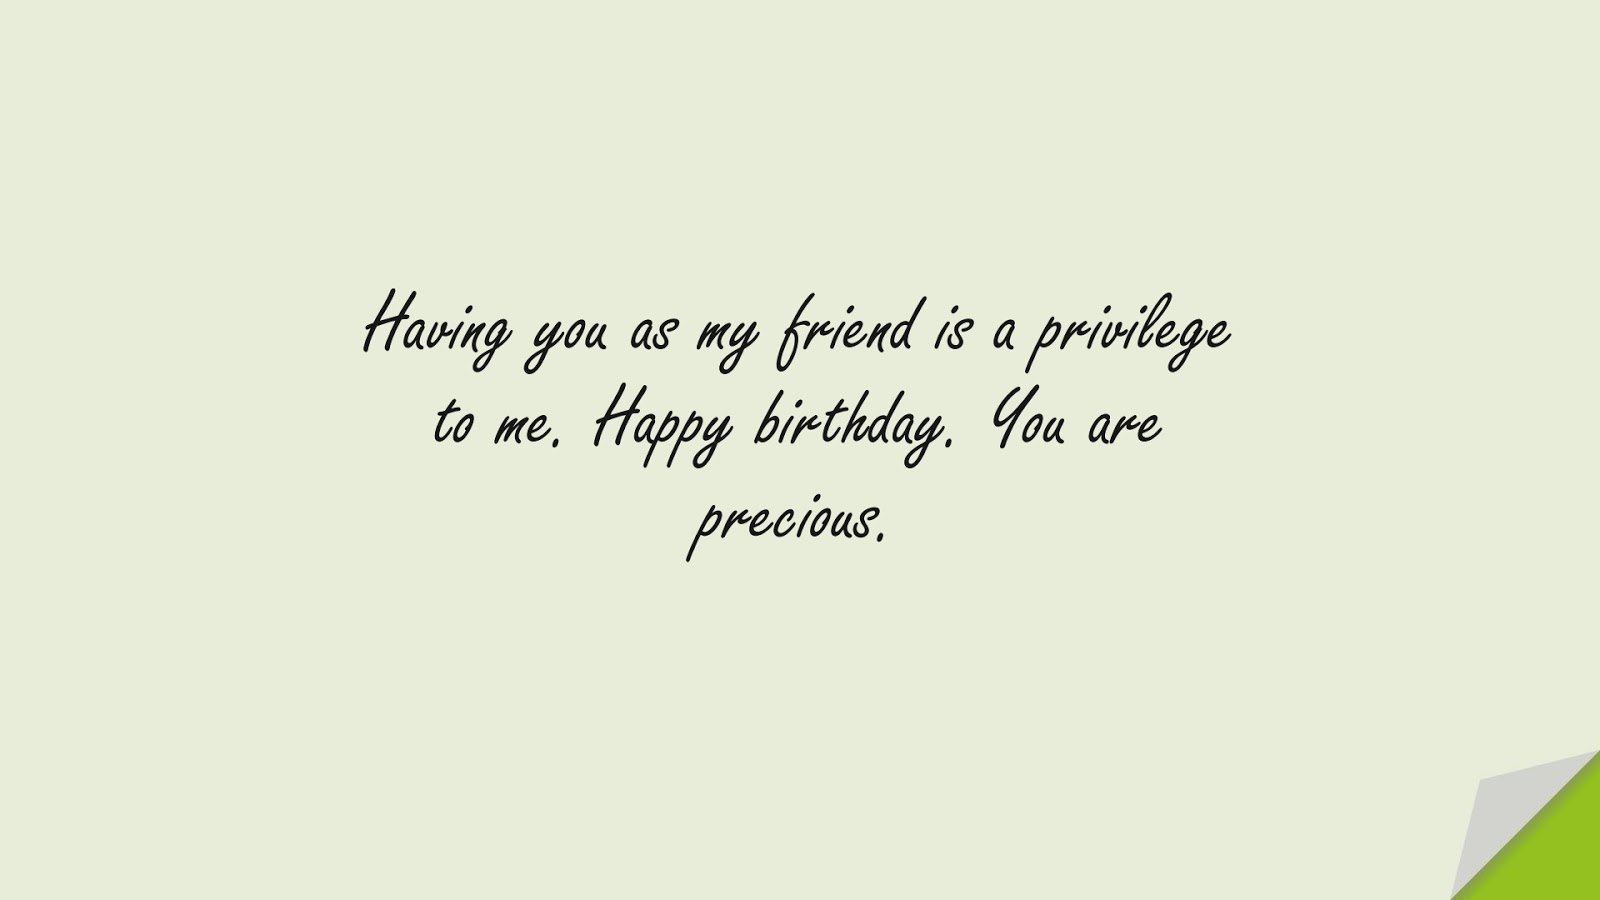 Having you as my friend is a privilege to me. Happy birthday. You are precious.FALSE